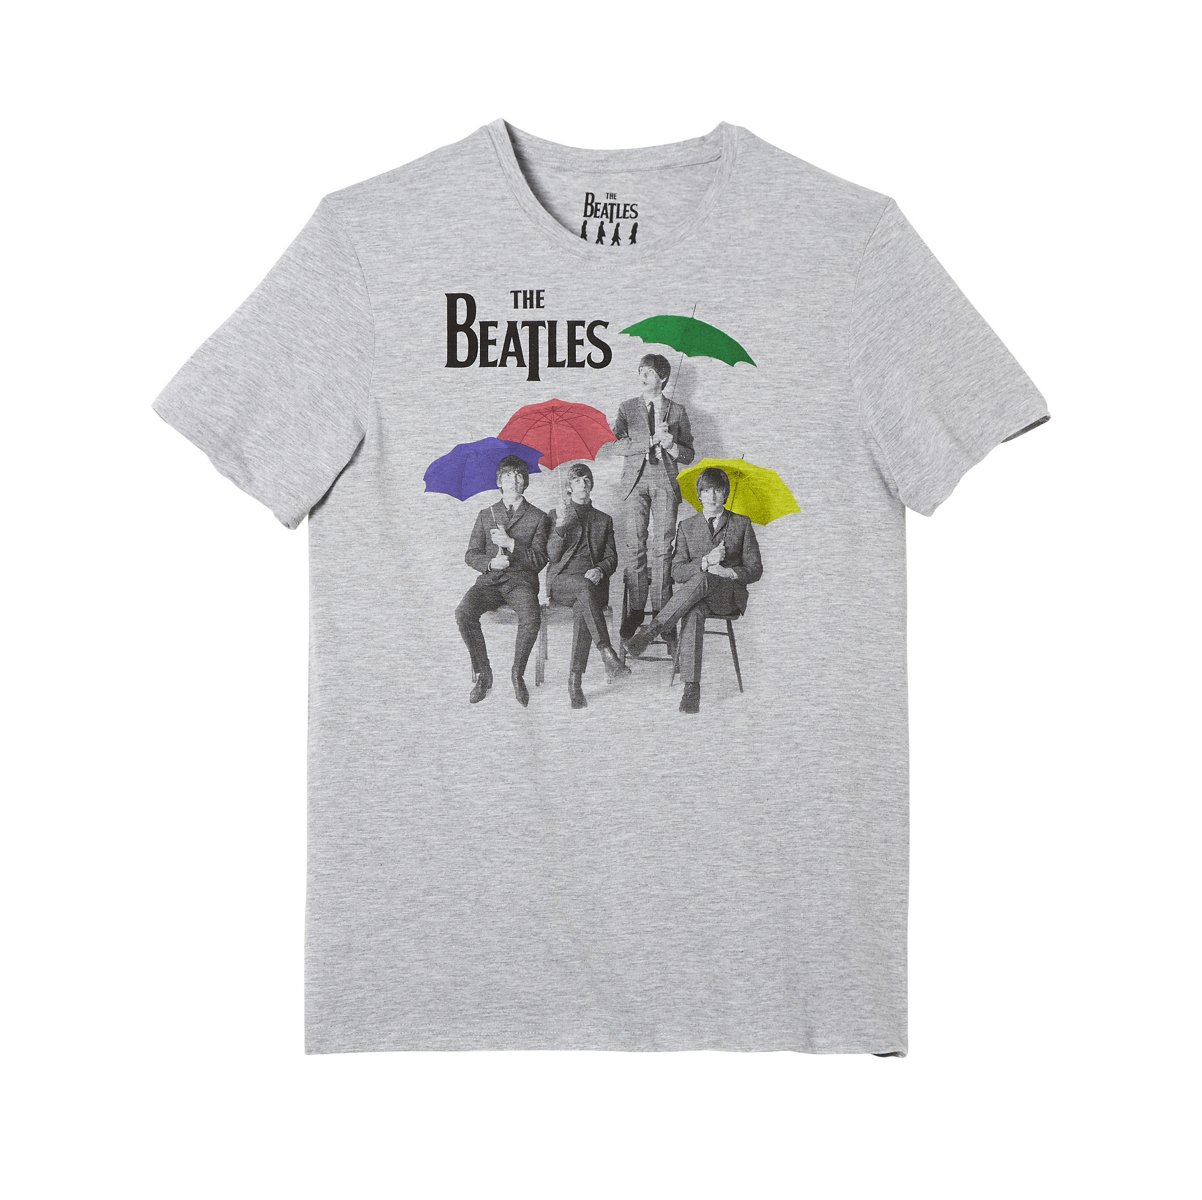 the beatles, tee shirt the beatles, tee shirt jules, tee shirt jules the beatles, t shirt the beatlesn t shirt jules, tee shirt, menswear, pret à porter, tee shirt homme, beatles songs, du dessin aux podiums, dudessinauxpodiums, tendance mode, mode a toi, pretaporter, fashion